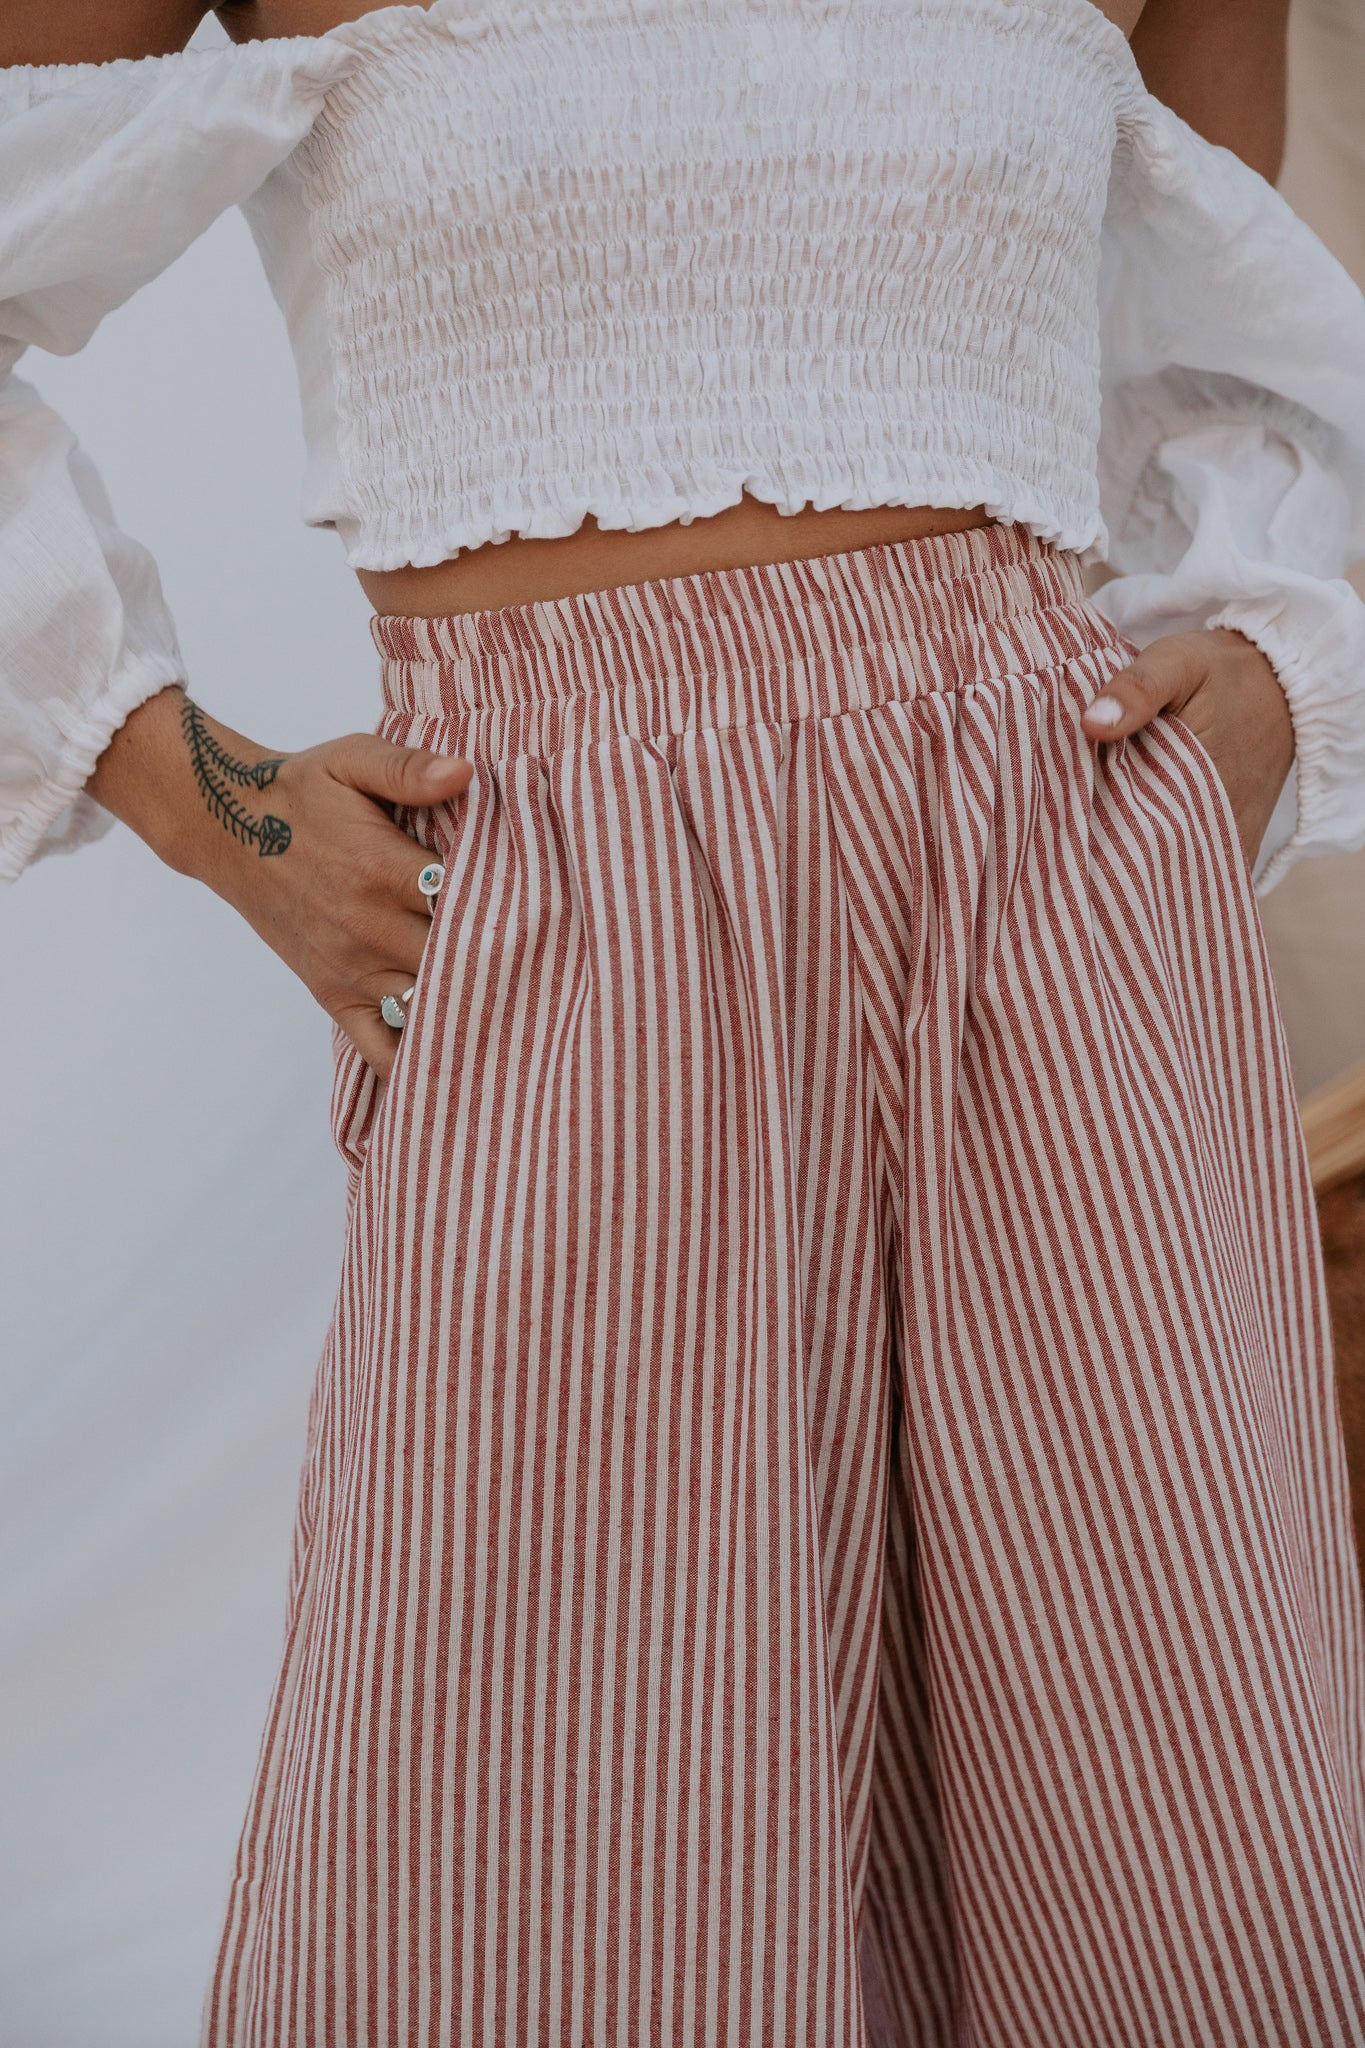 The Zephyr Linen Pants in Red Sailor Stripe